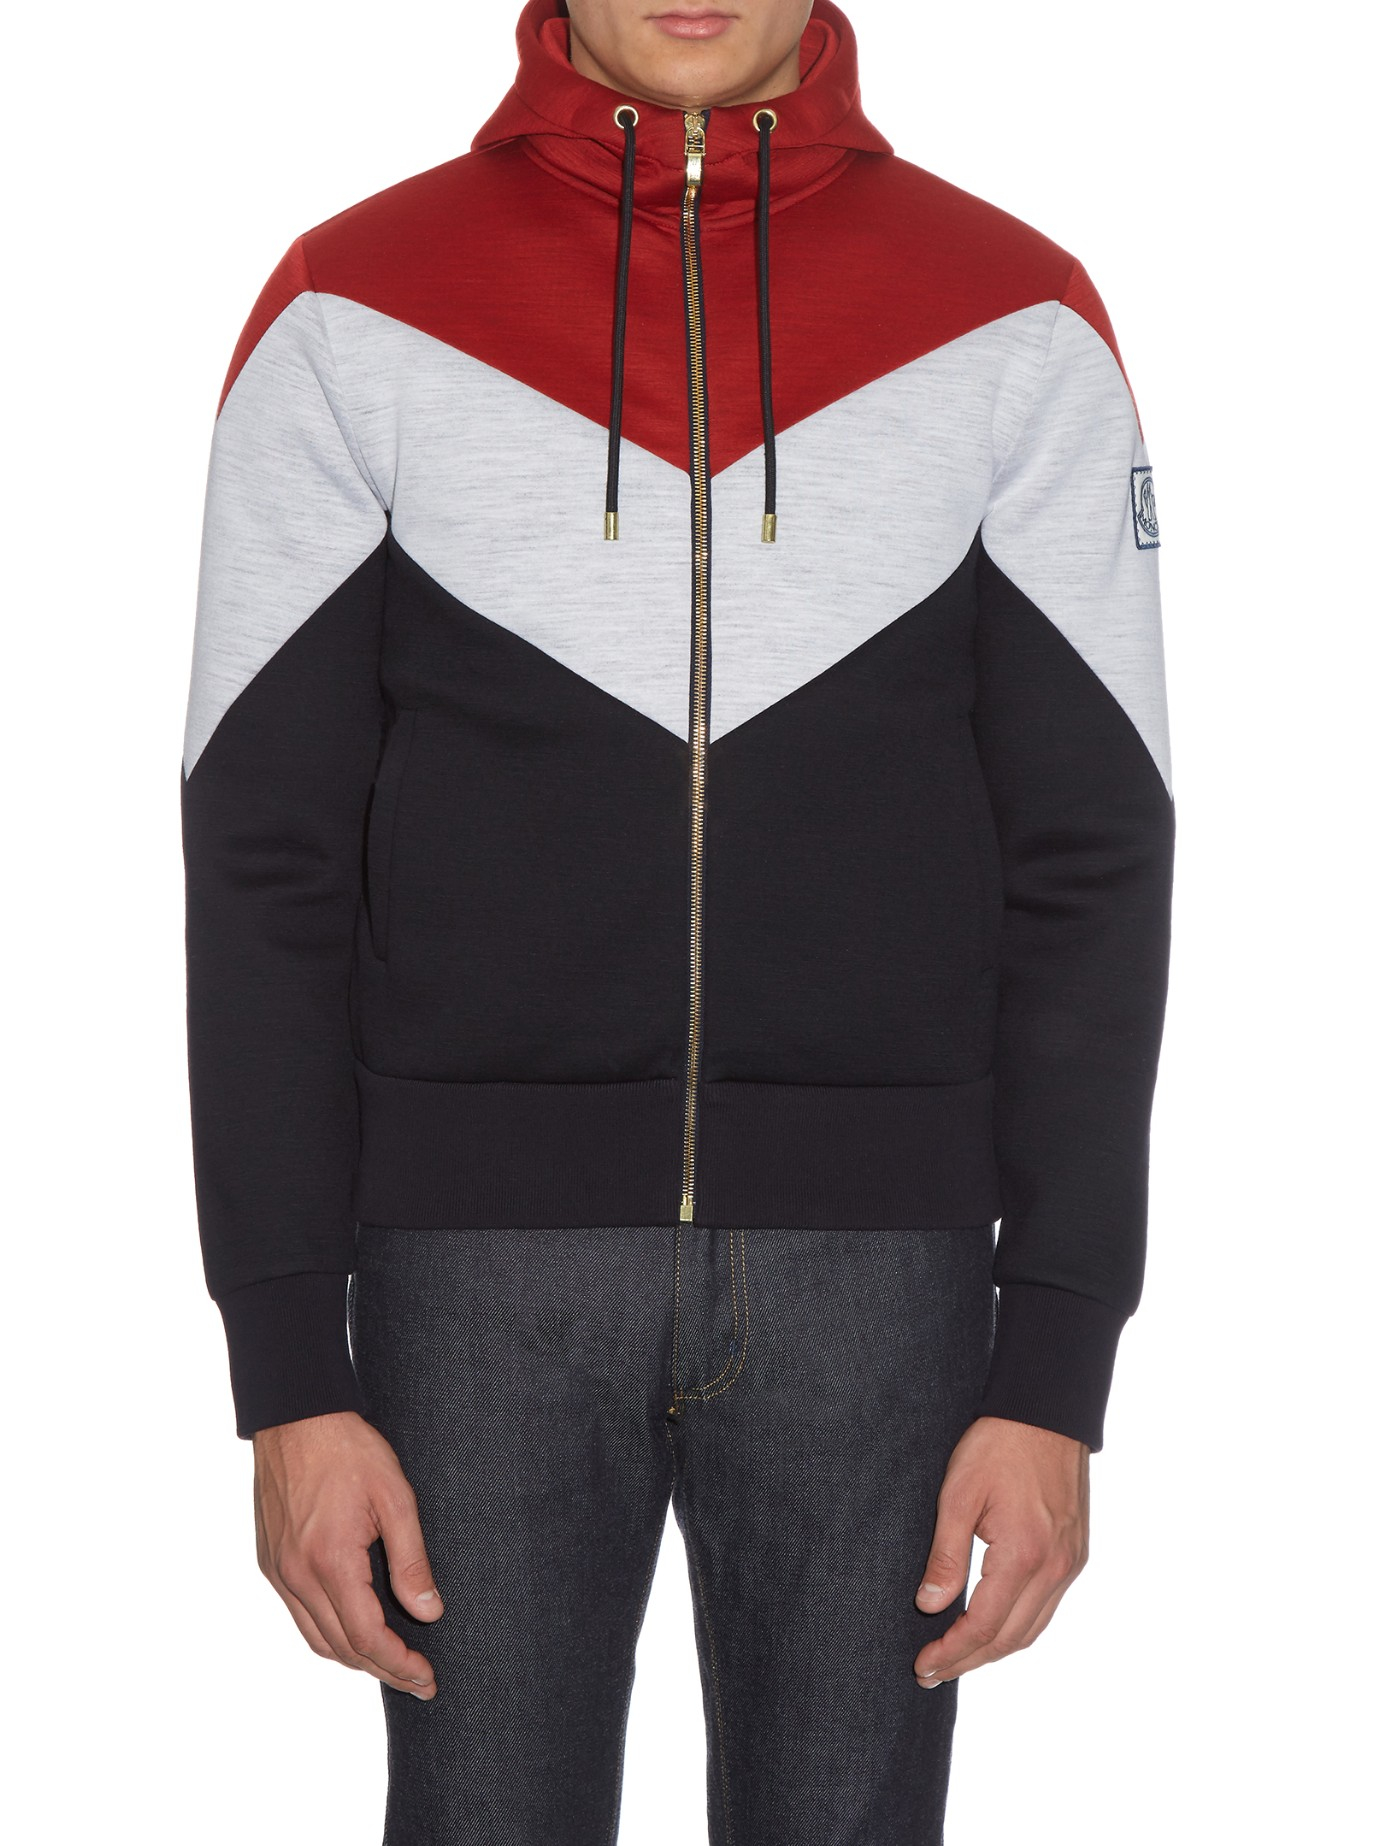 Lyst - Moncler Gamme Bleu Striped Zip-up Hooded Wool Sweatshirt in Red for Men